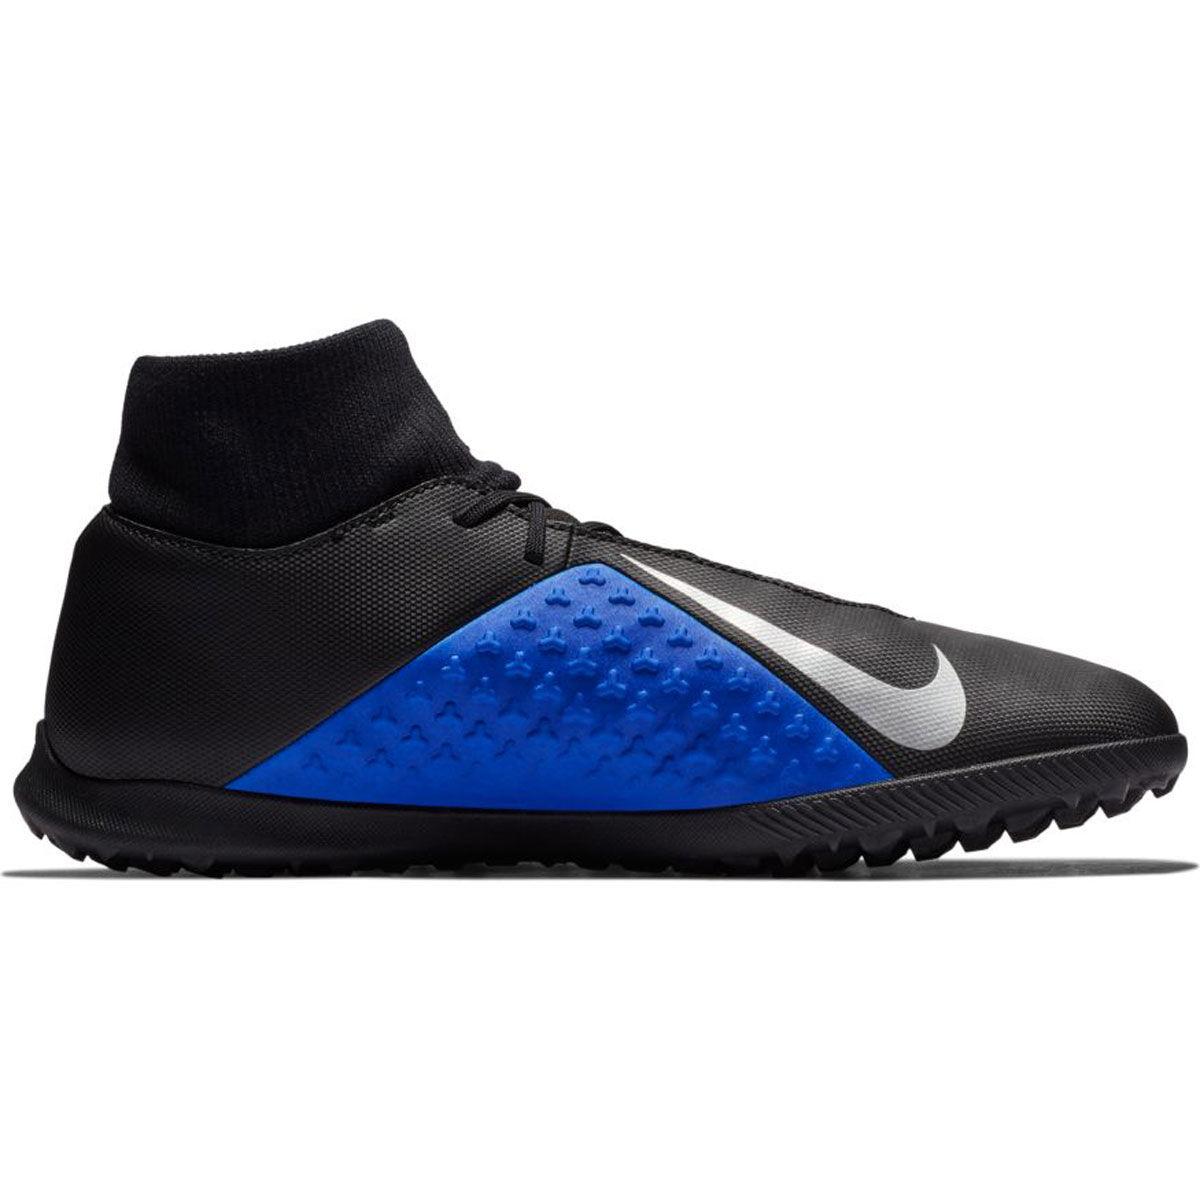 Nike Phantom Vision Club Dynamic Fit Mens Turf Soccer Cleat